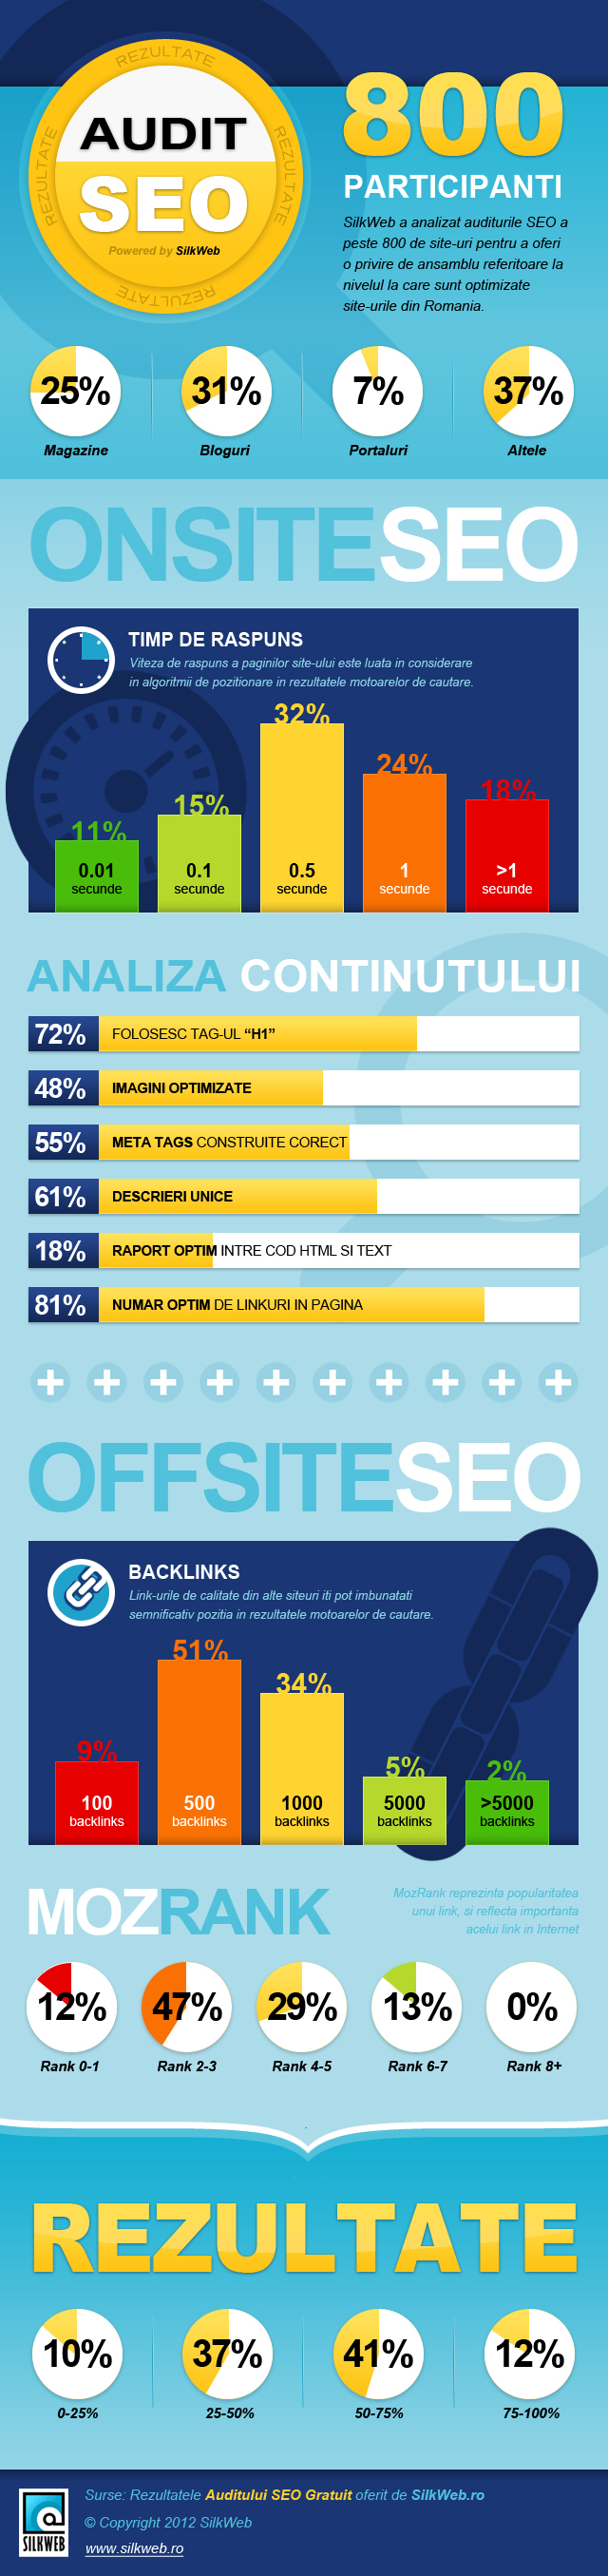 infographic audit seo